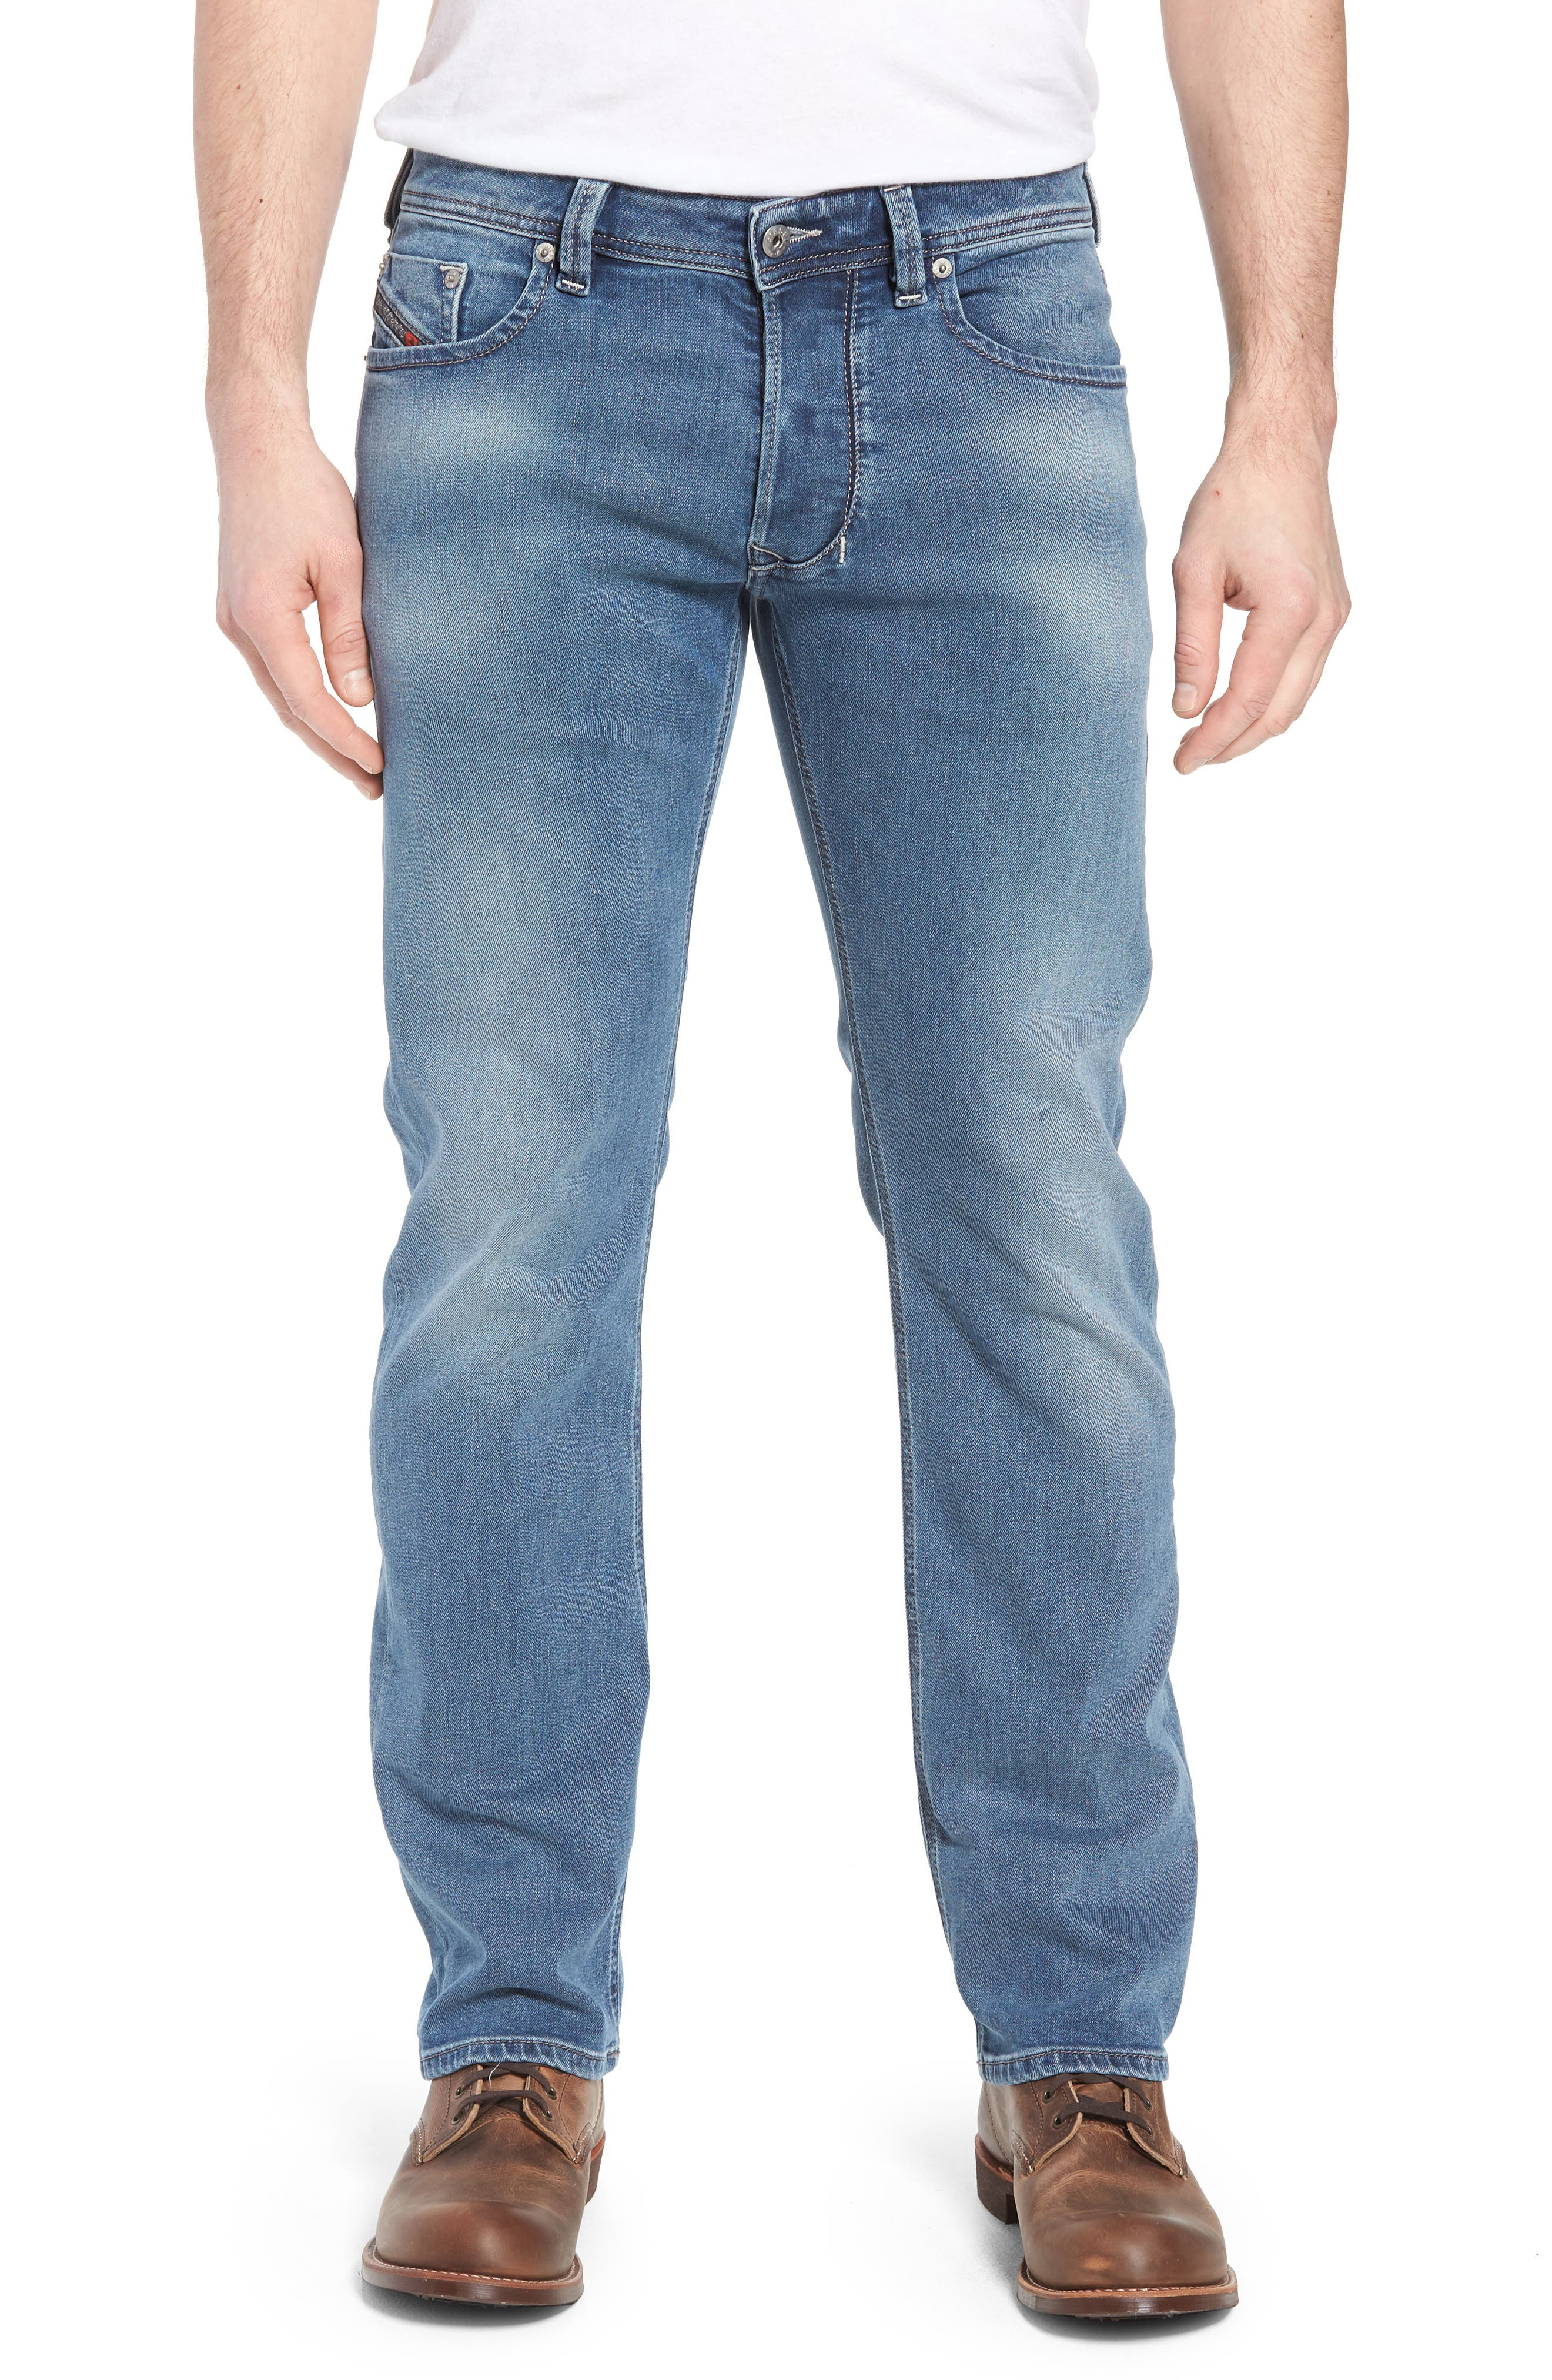 Larkee Relaxed Fit Jeans,                             Main thumbnail 1, color,                             400